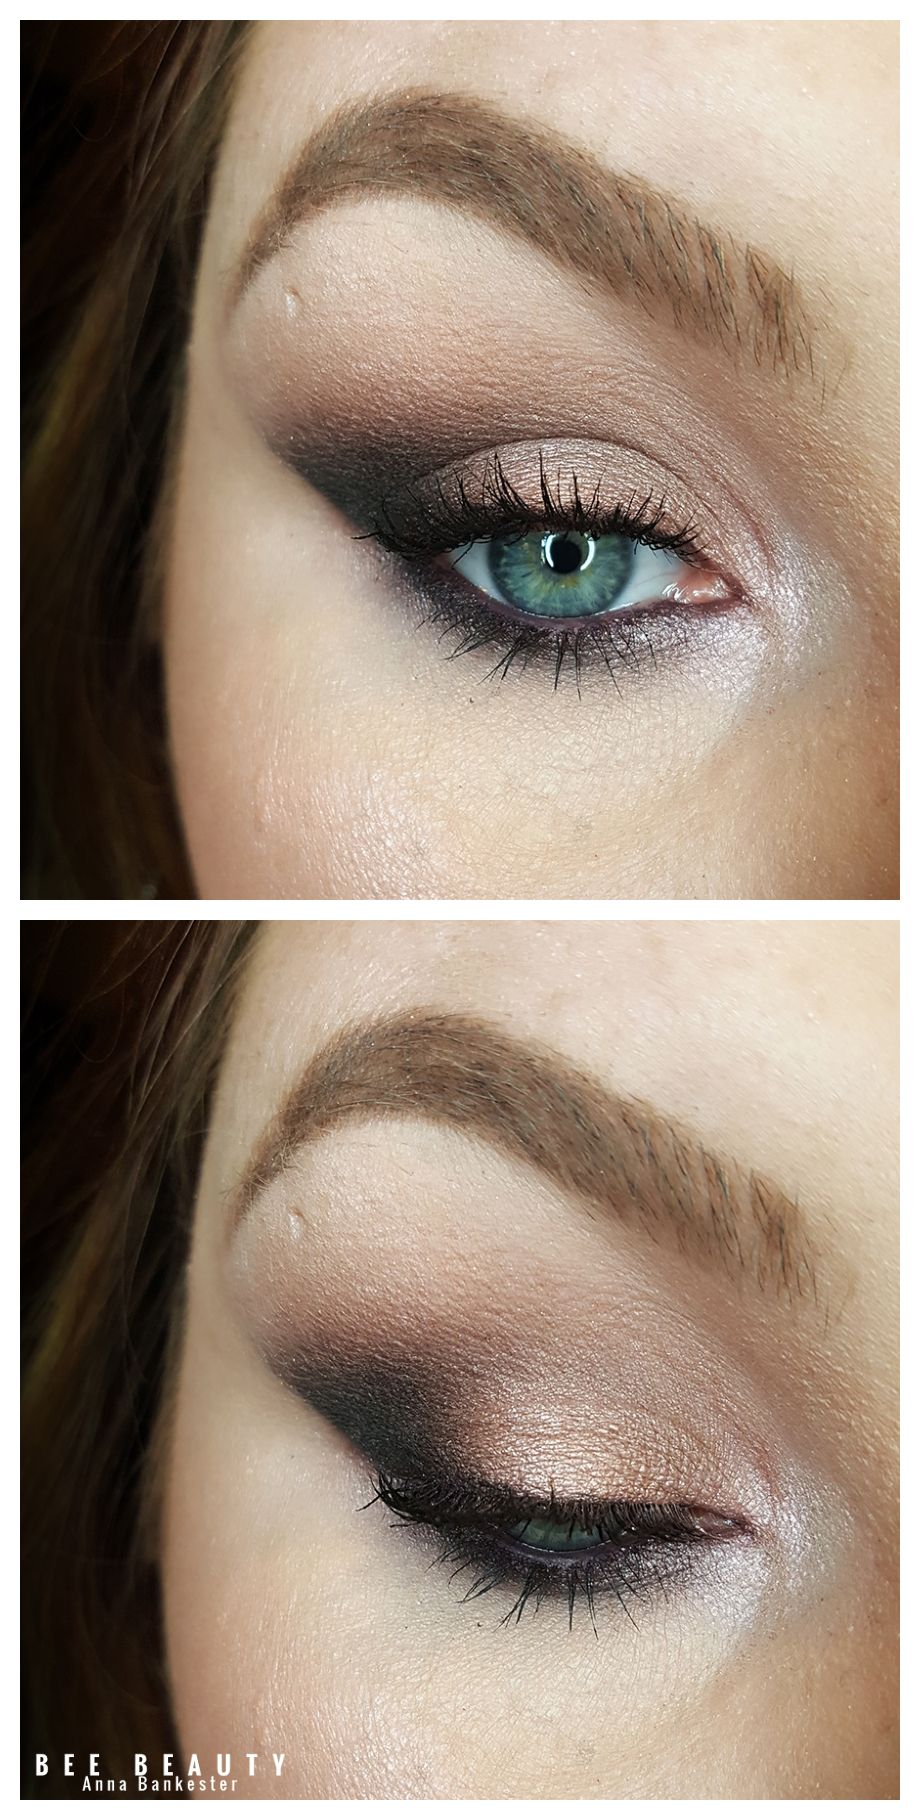 Urban decay vice 2 palette. Green smokey eye with a pop of